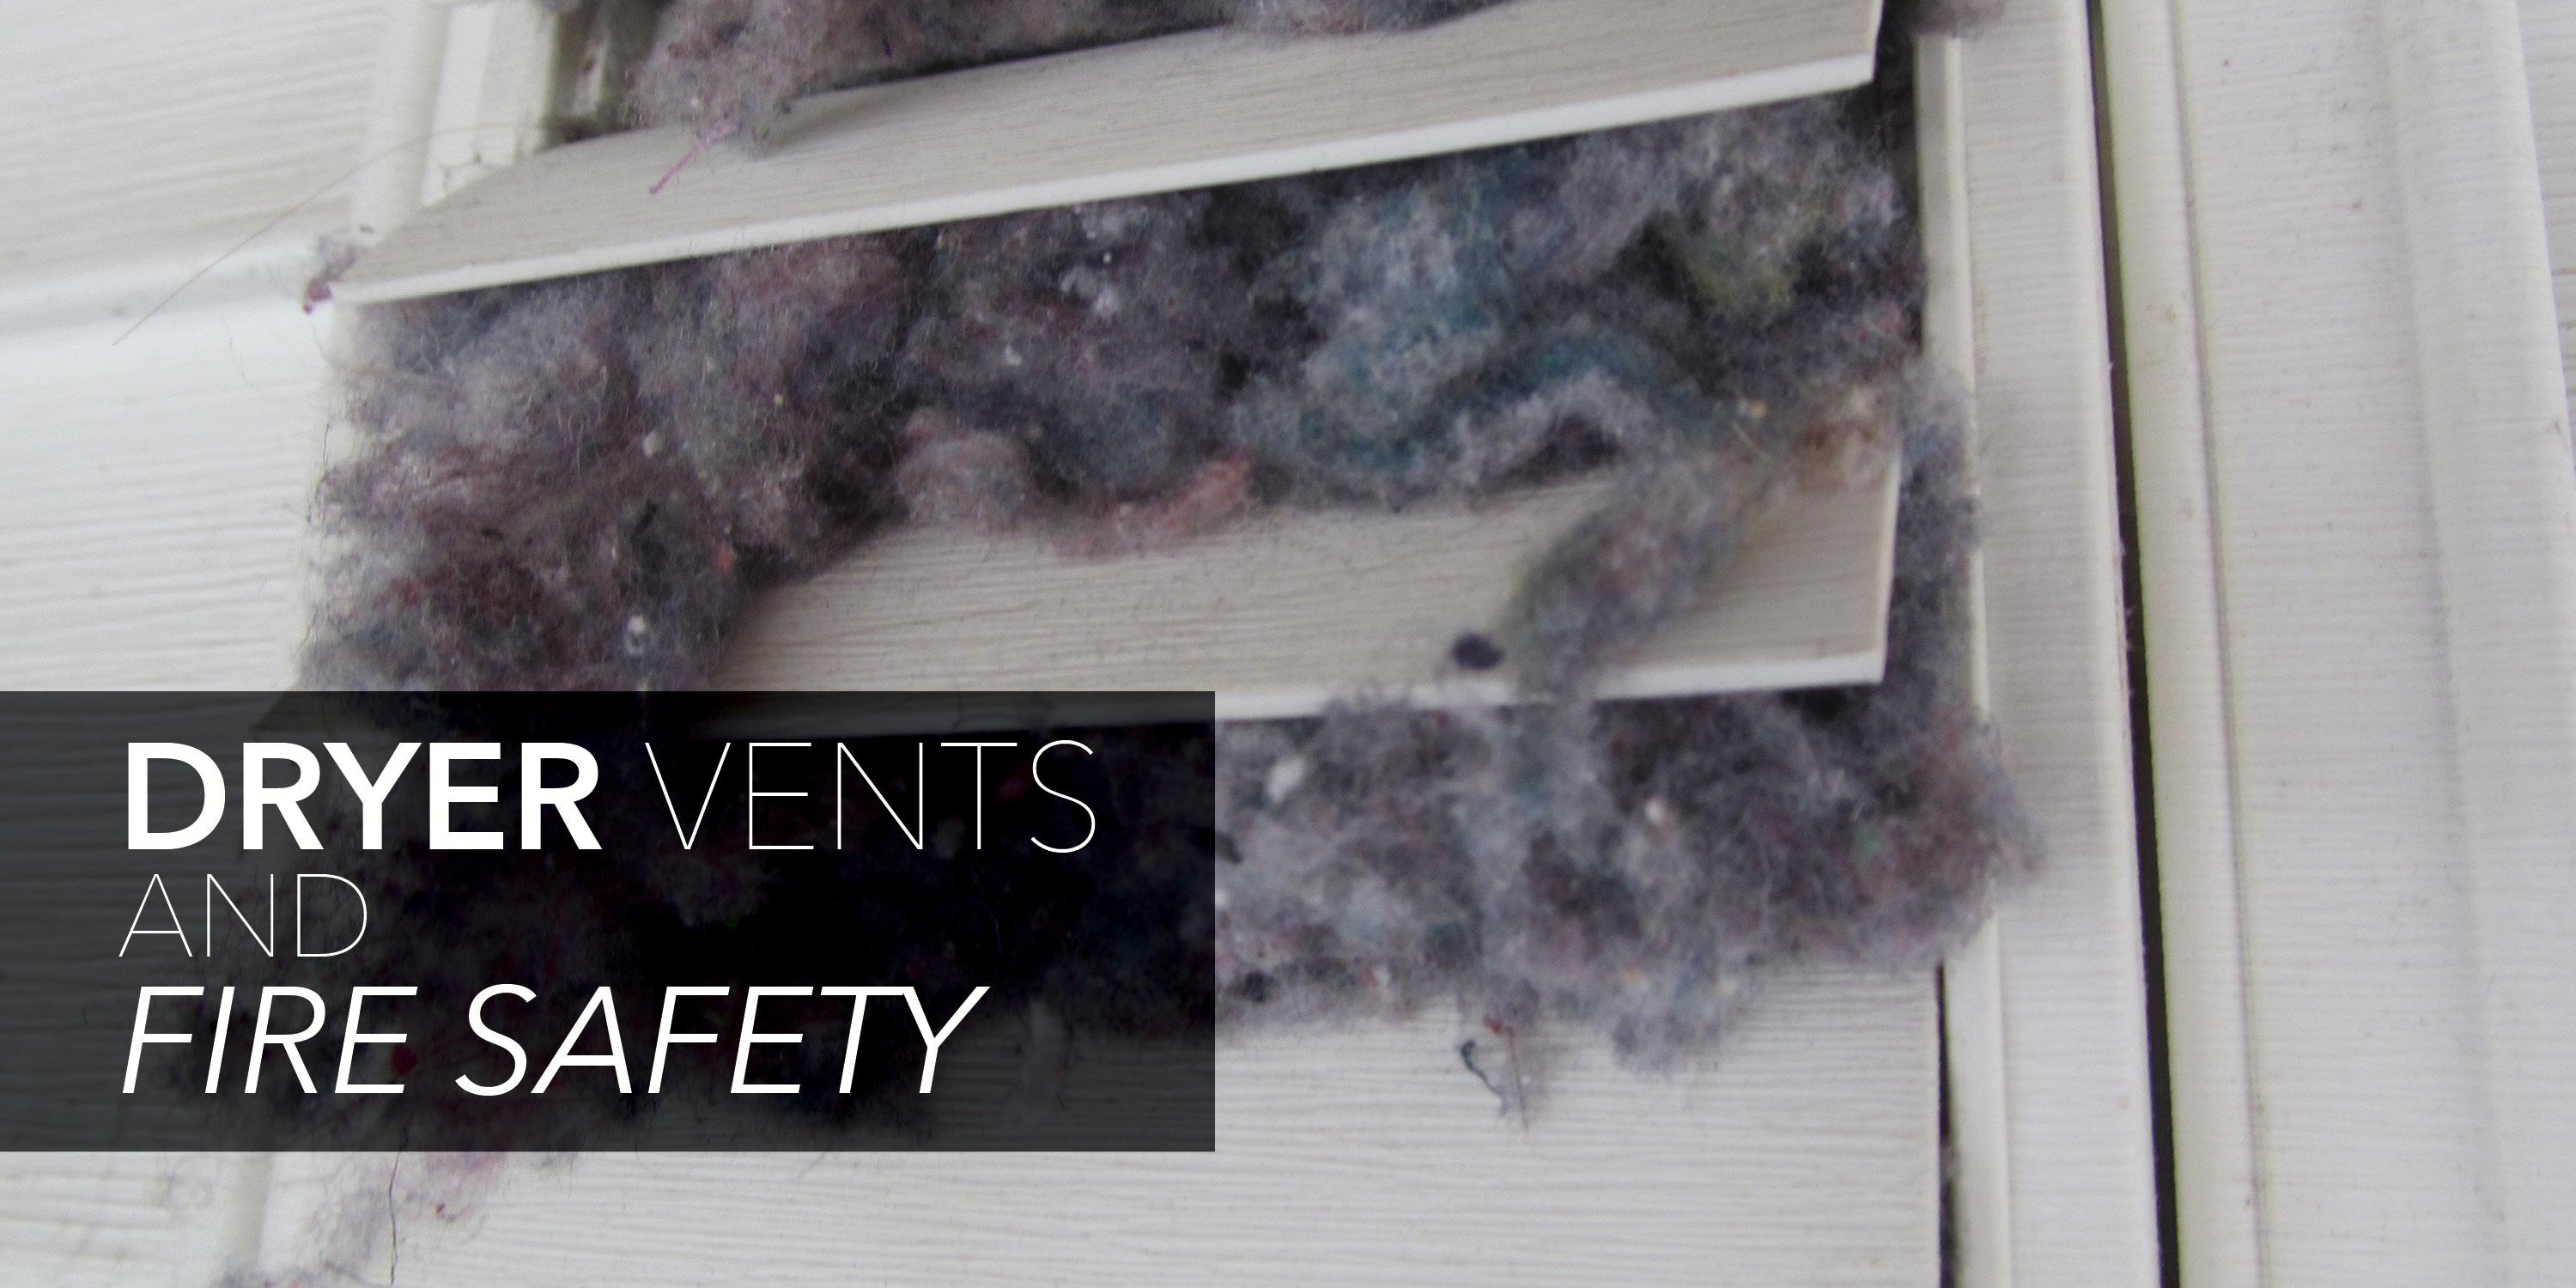 Dryer Vents And Fire Safety